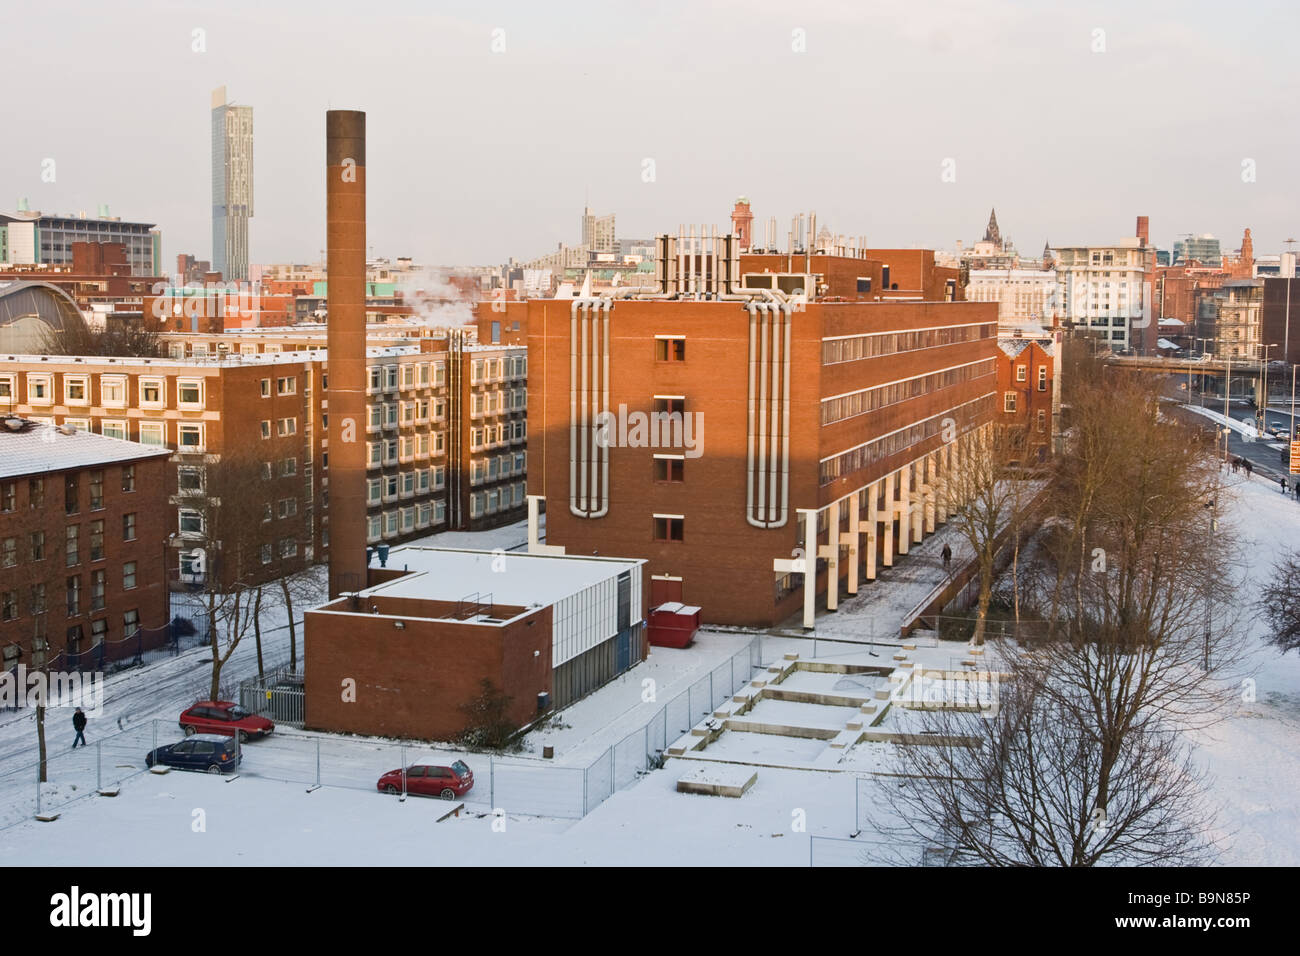 Materials Science Centre in winter with snow on ground The University of Manchester UK - Stock Image